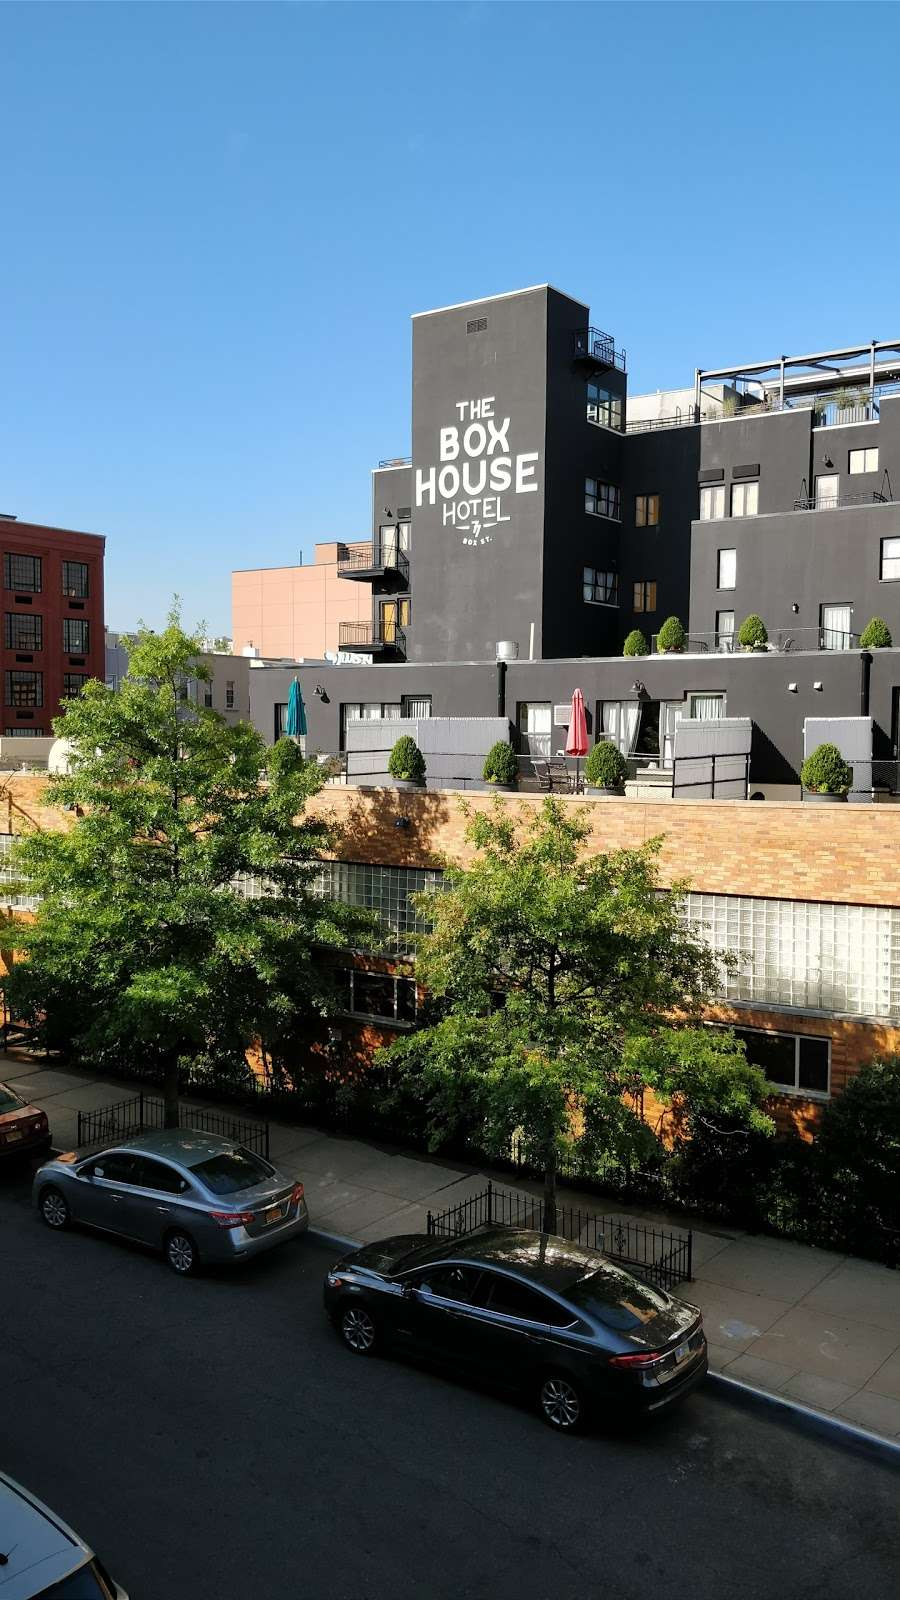 The Box House Hotel - lodging  | Photo 7 of 10 | Address: 77 Box St, Brooklyn, NY 11222, USA | Phone: (718) 383-3800